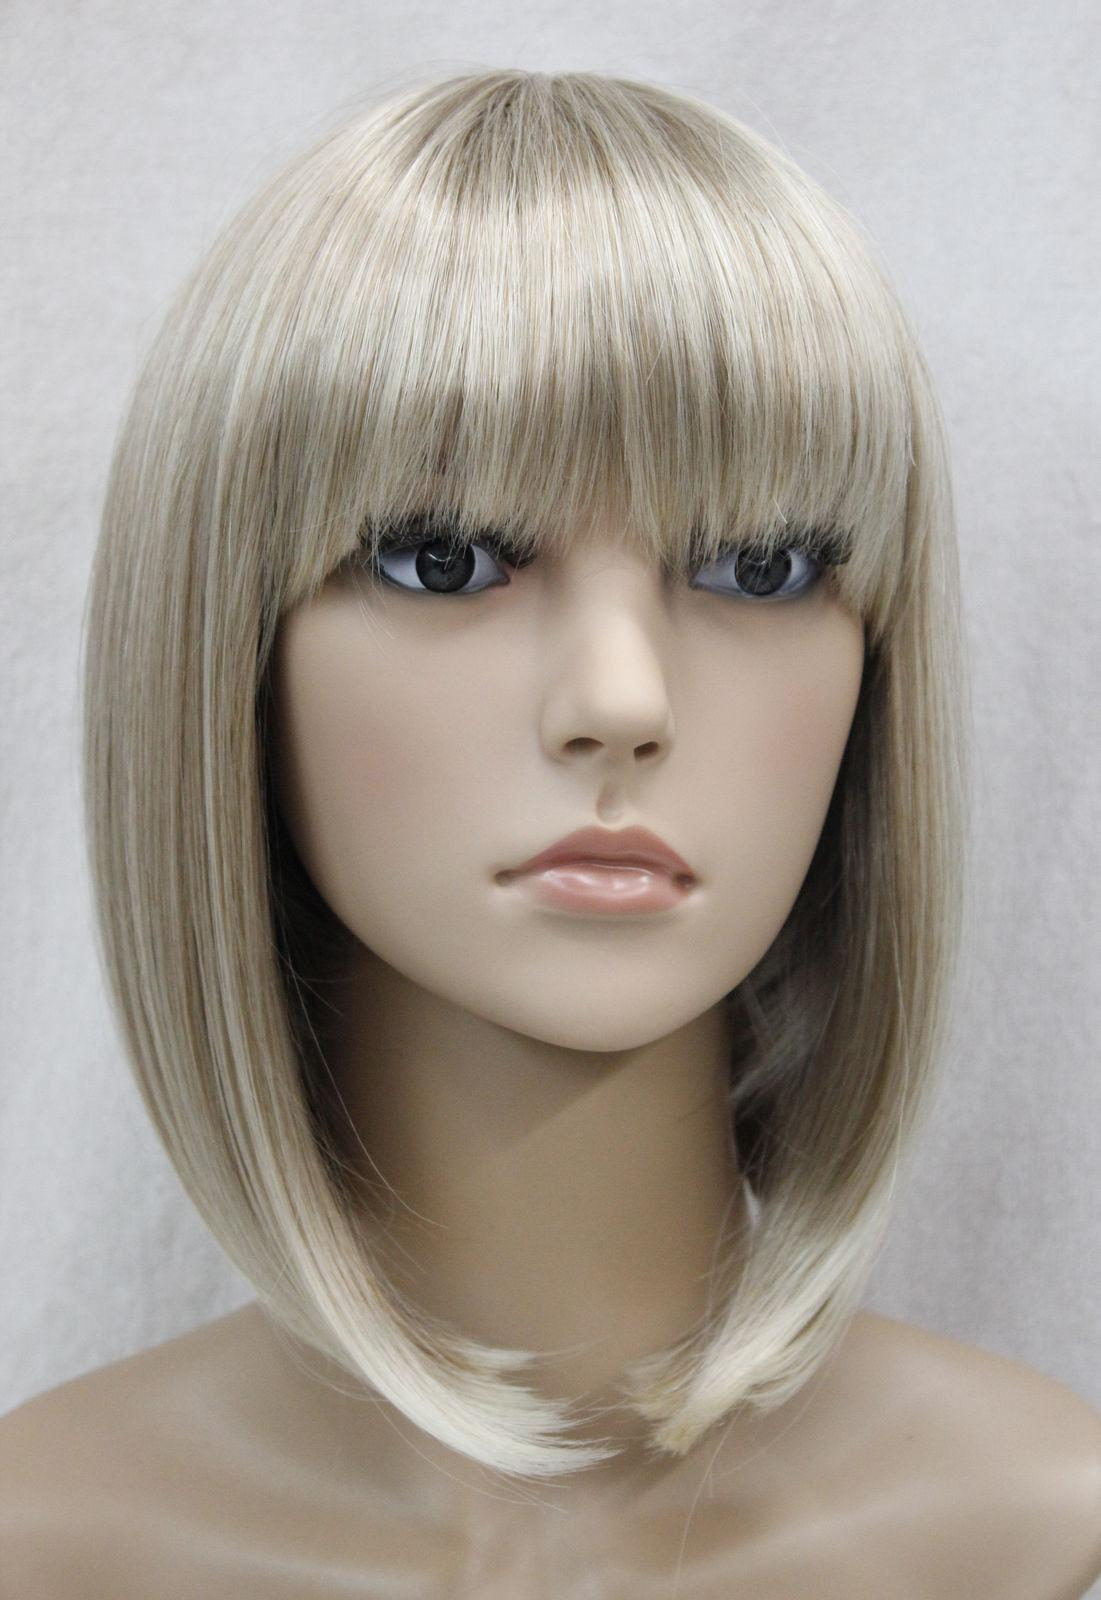 hair bangs wig blonde Short with